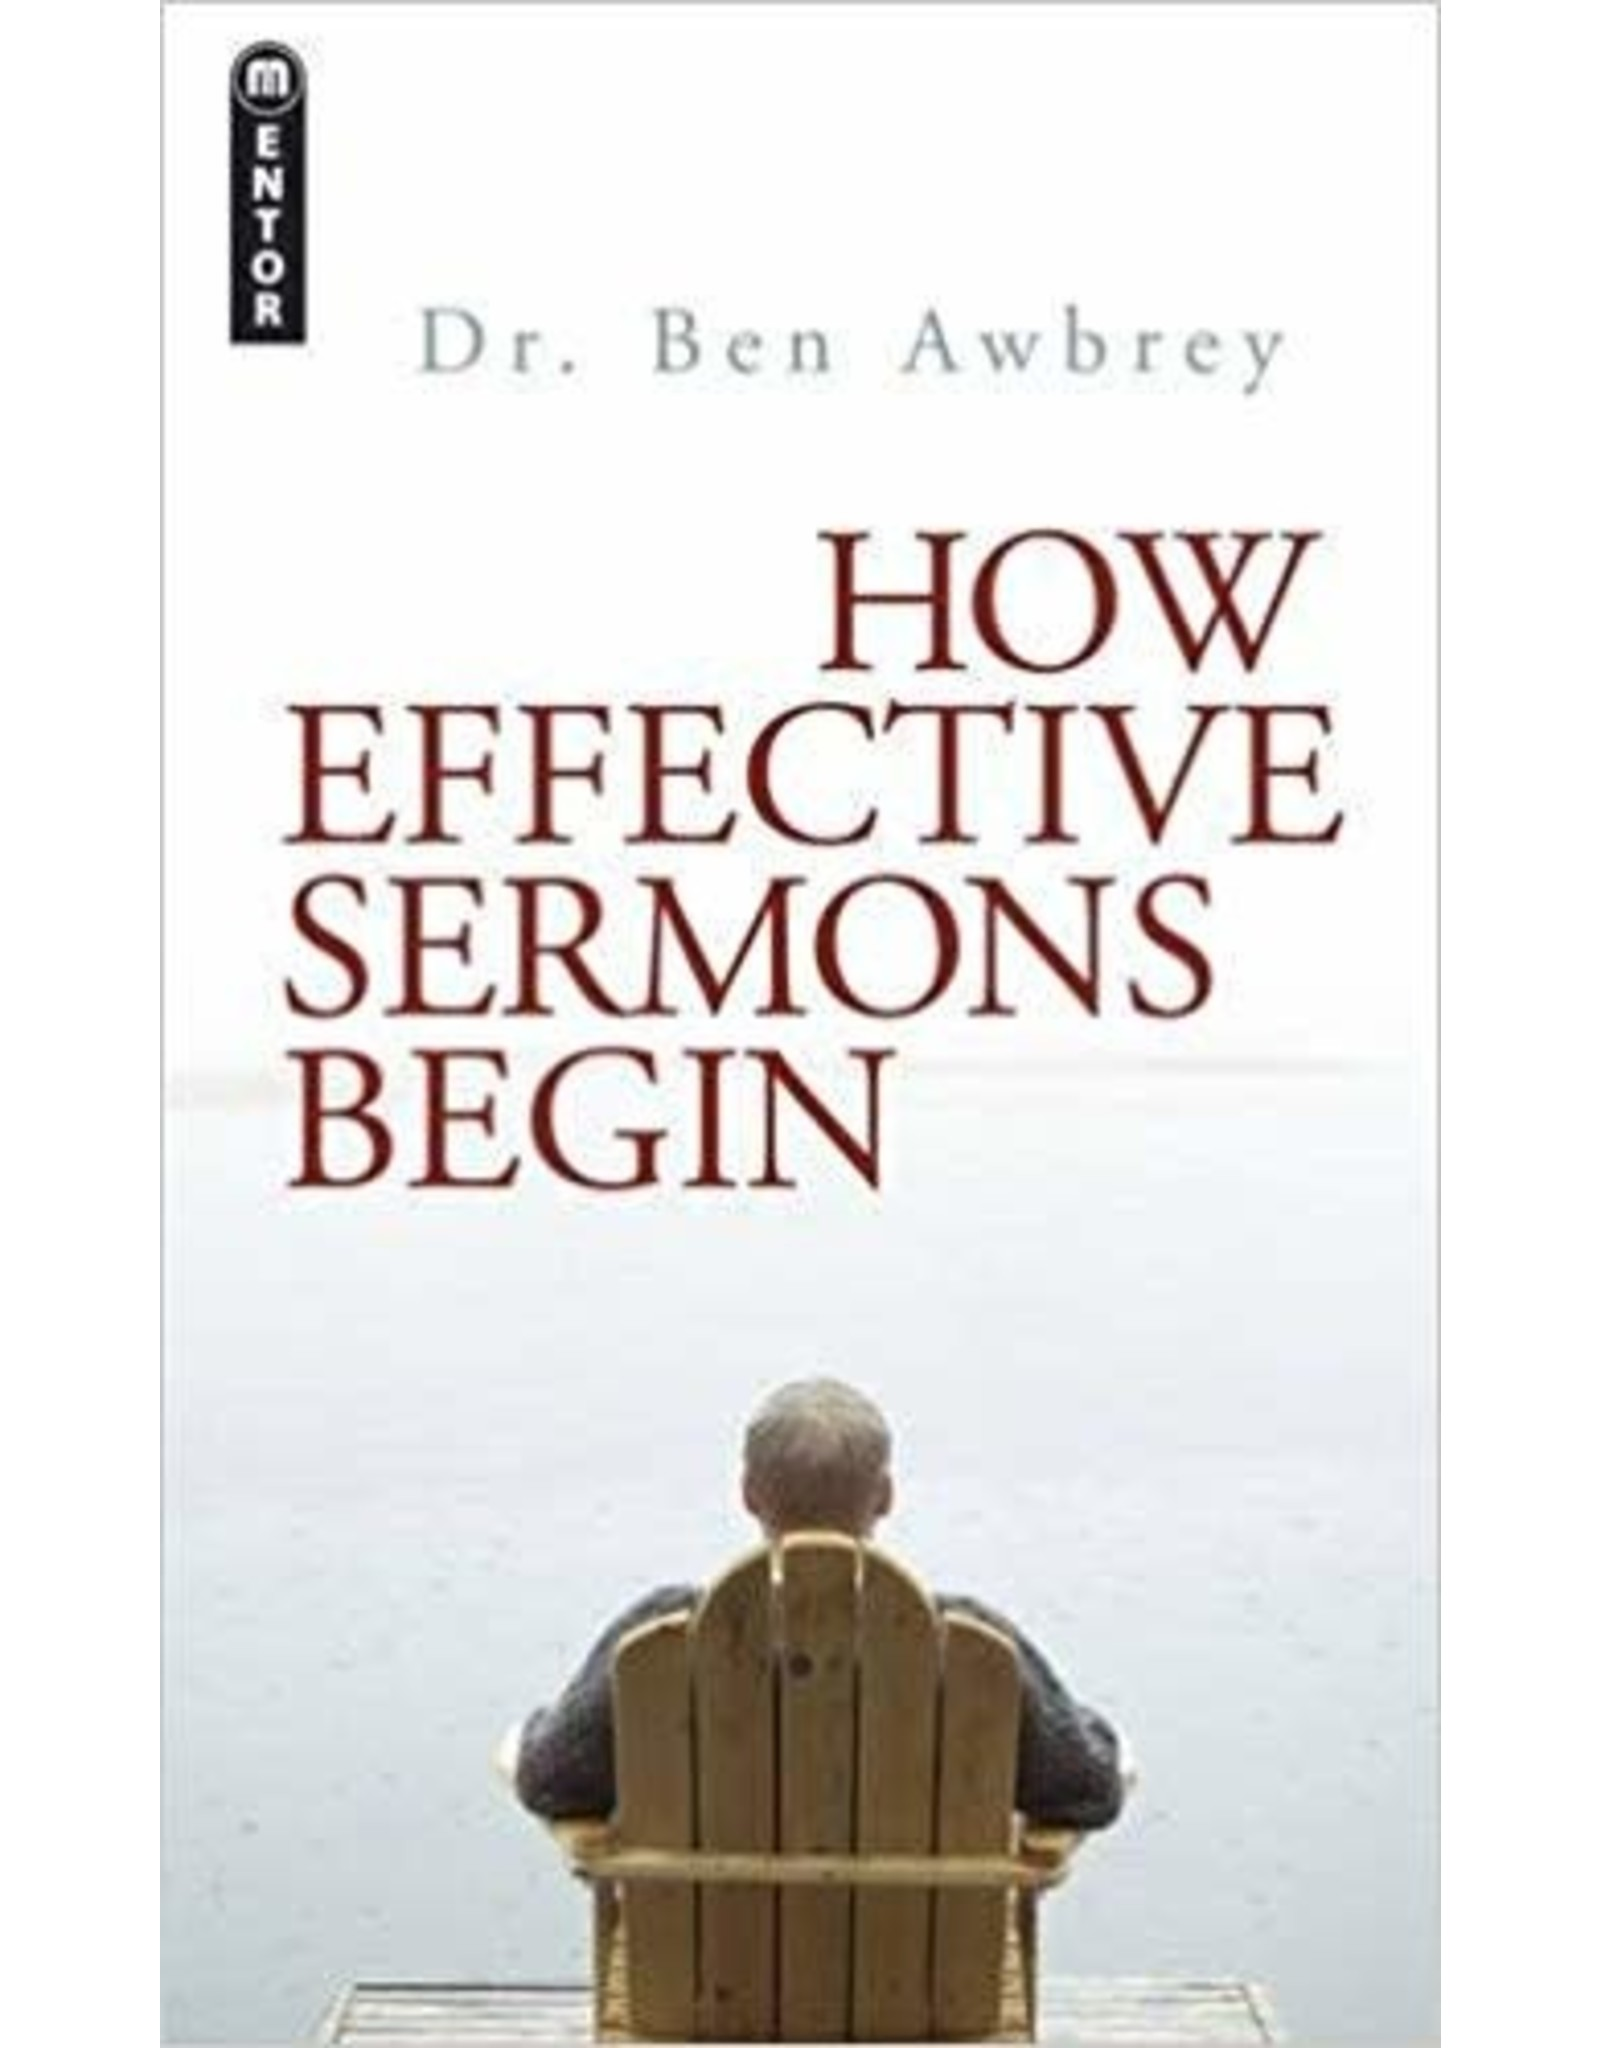 Awbrey How Effective Sermons Begin